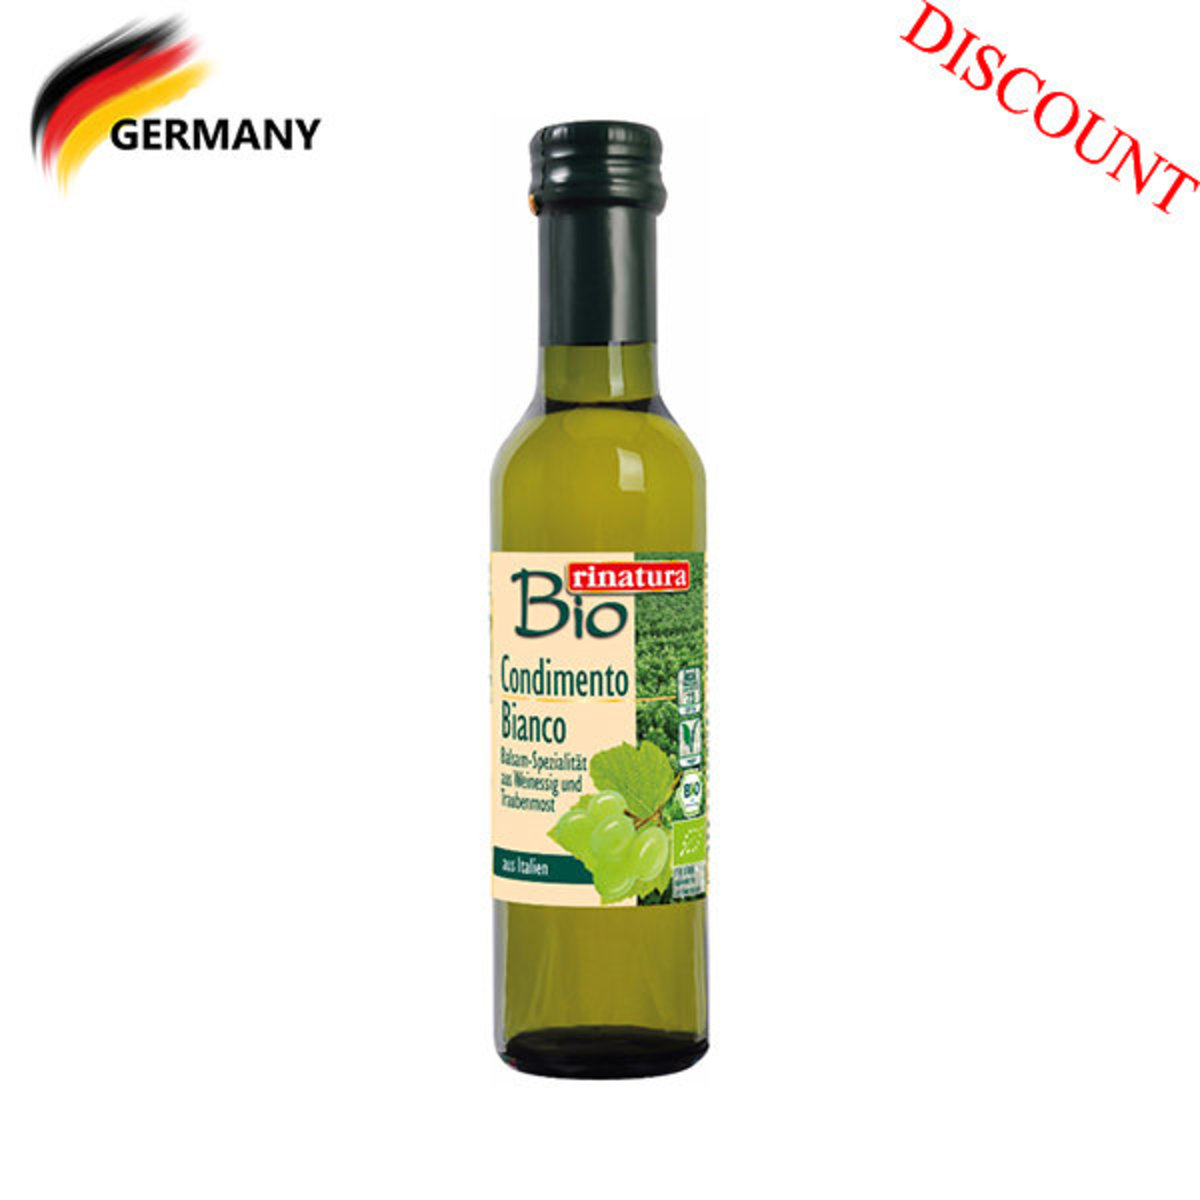 Organic Condiment Balsamico Bianco 250ml (best before date: 18/04/2020)